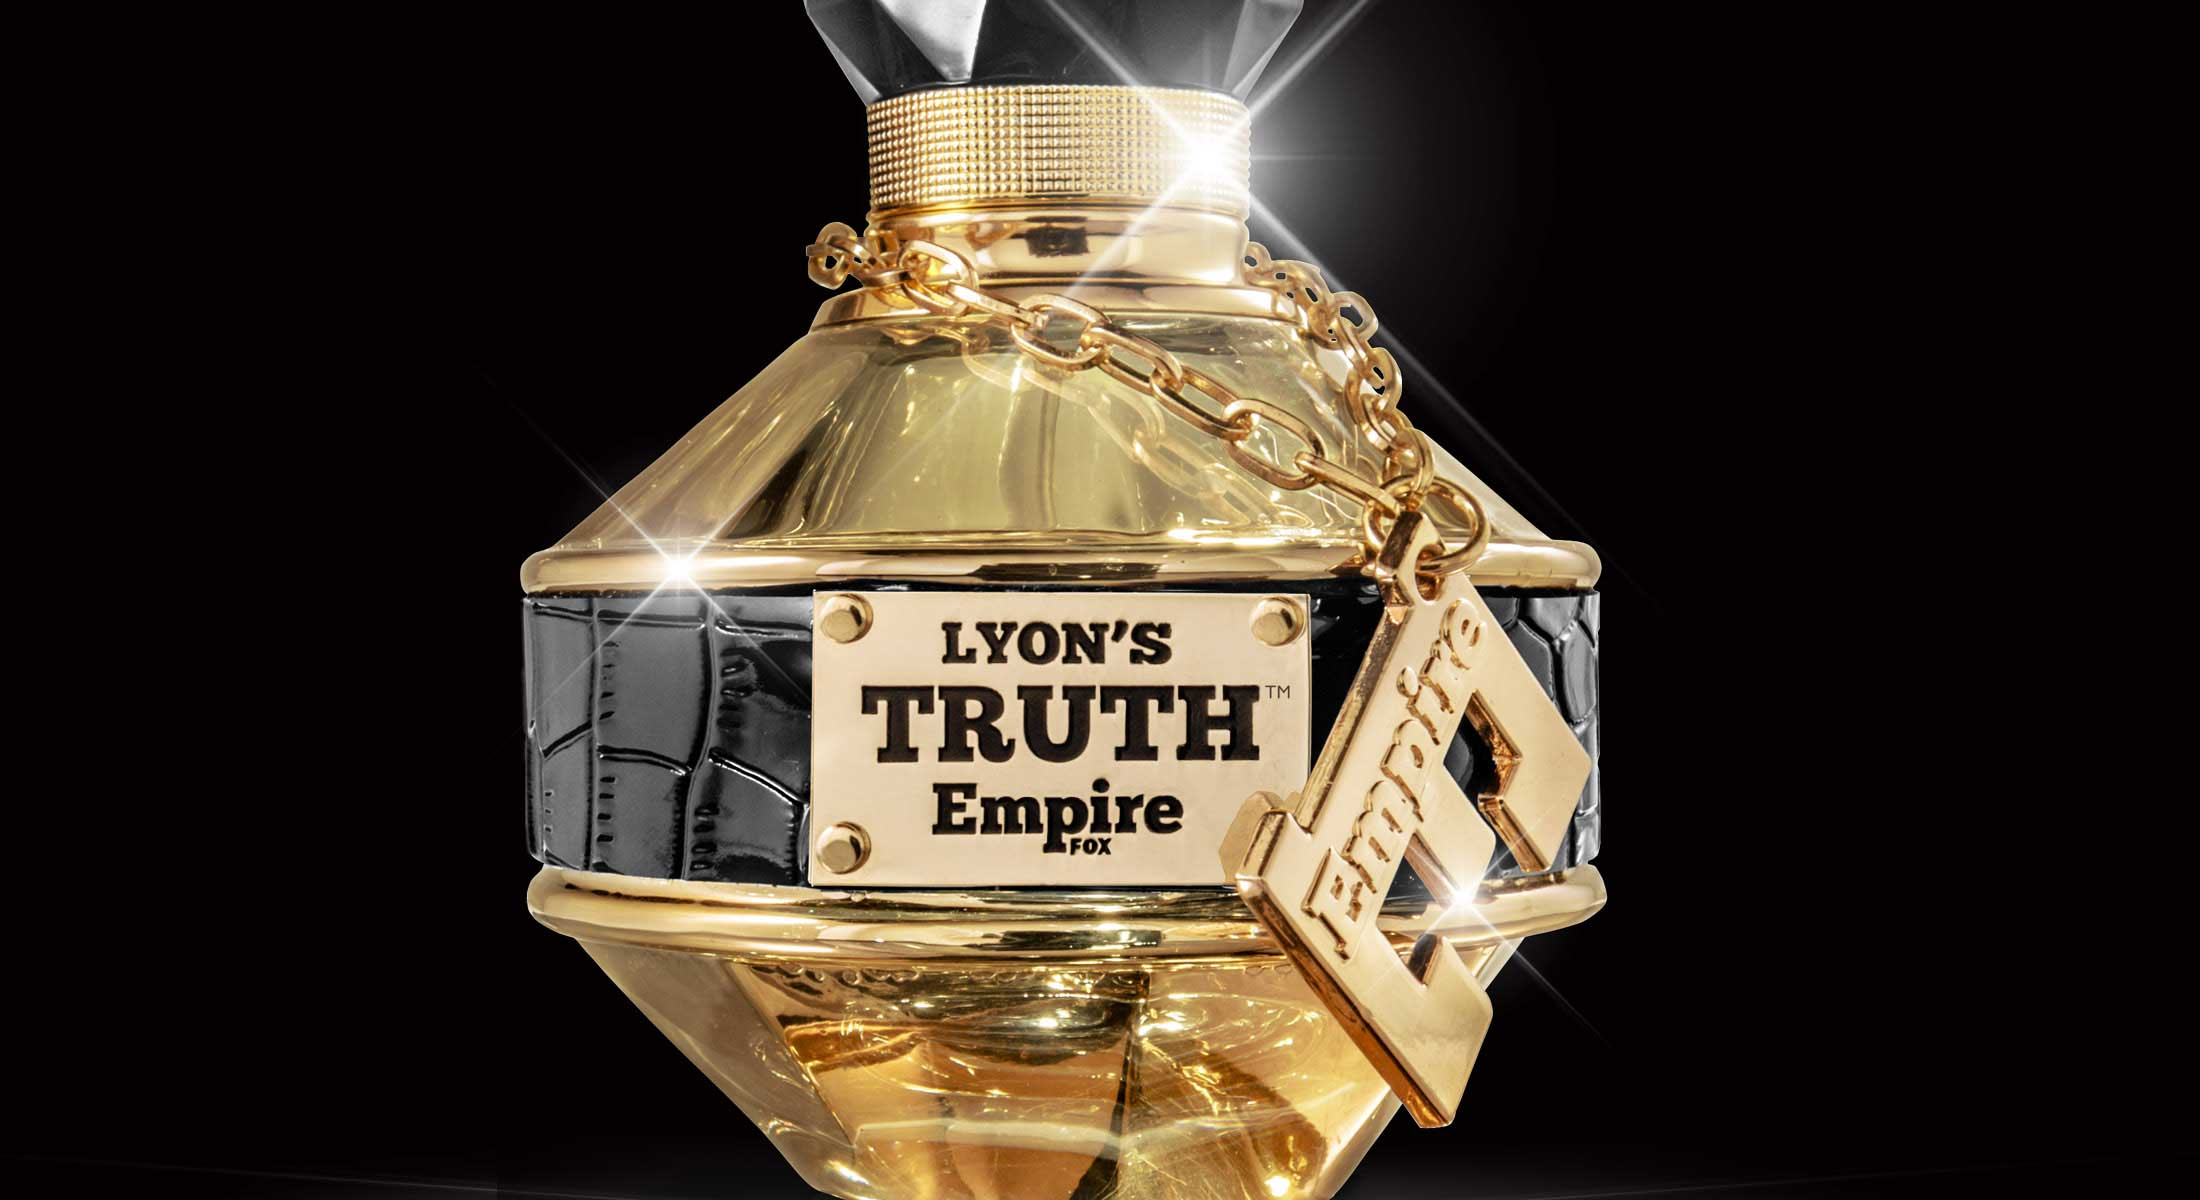 Lyons Truth Empire Fragrance Perfume A Fragrance For Women 2016